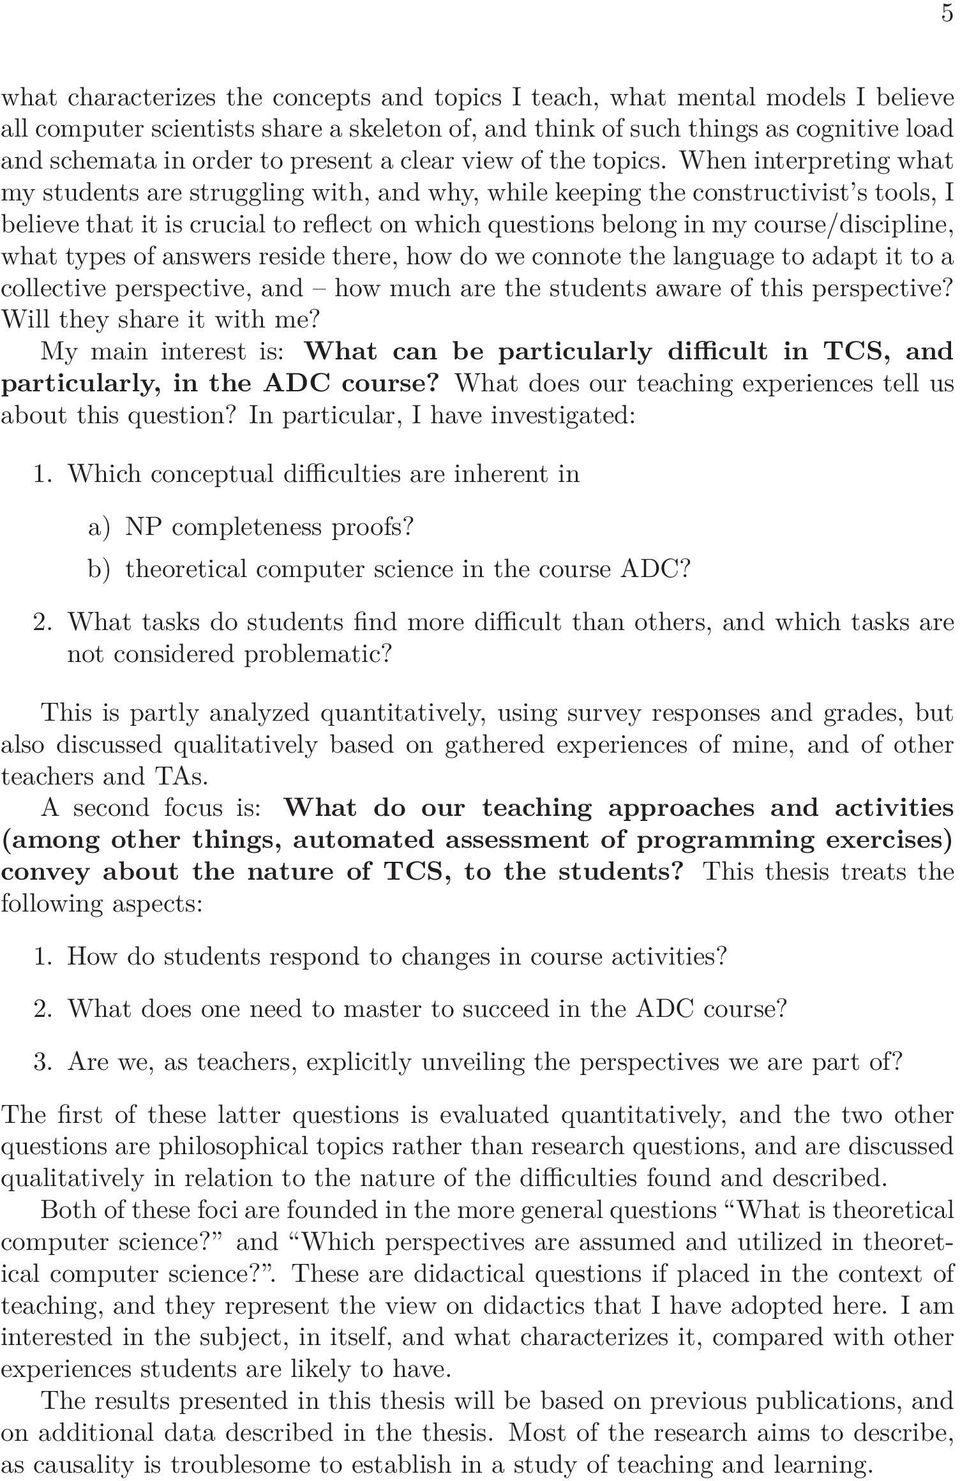 thesis topics in education pdf